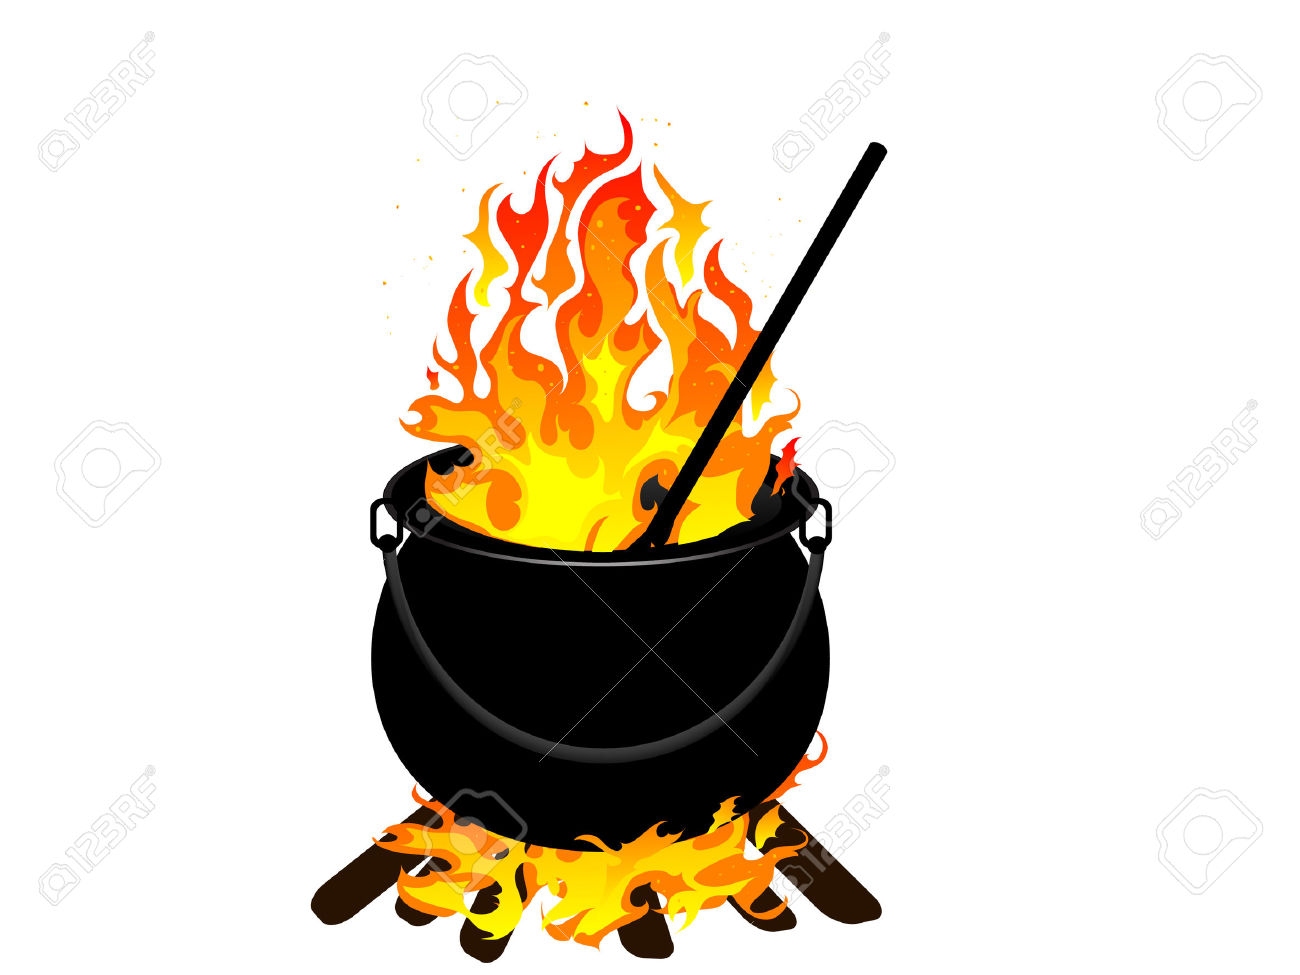 Witches Cauldron With Flames.